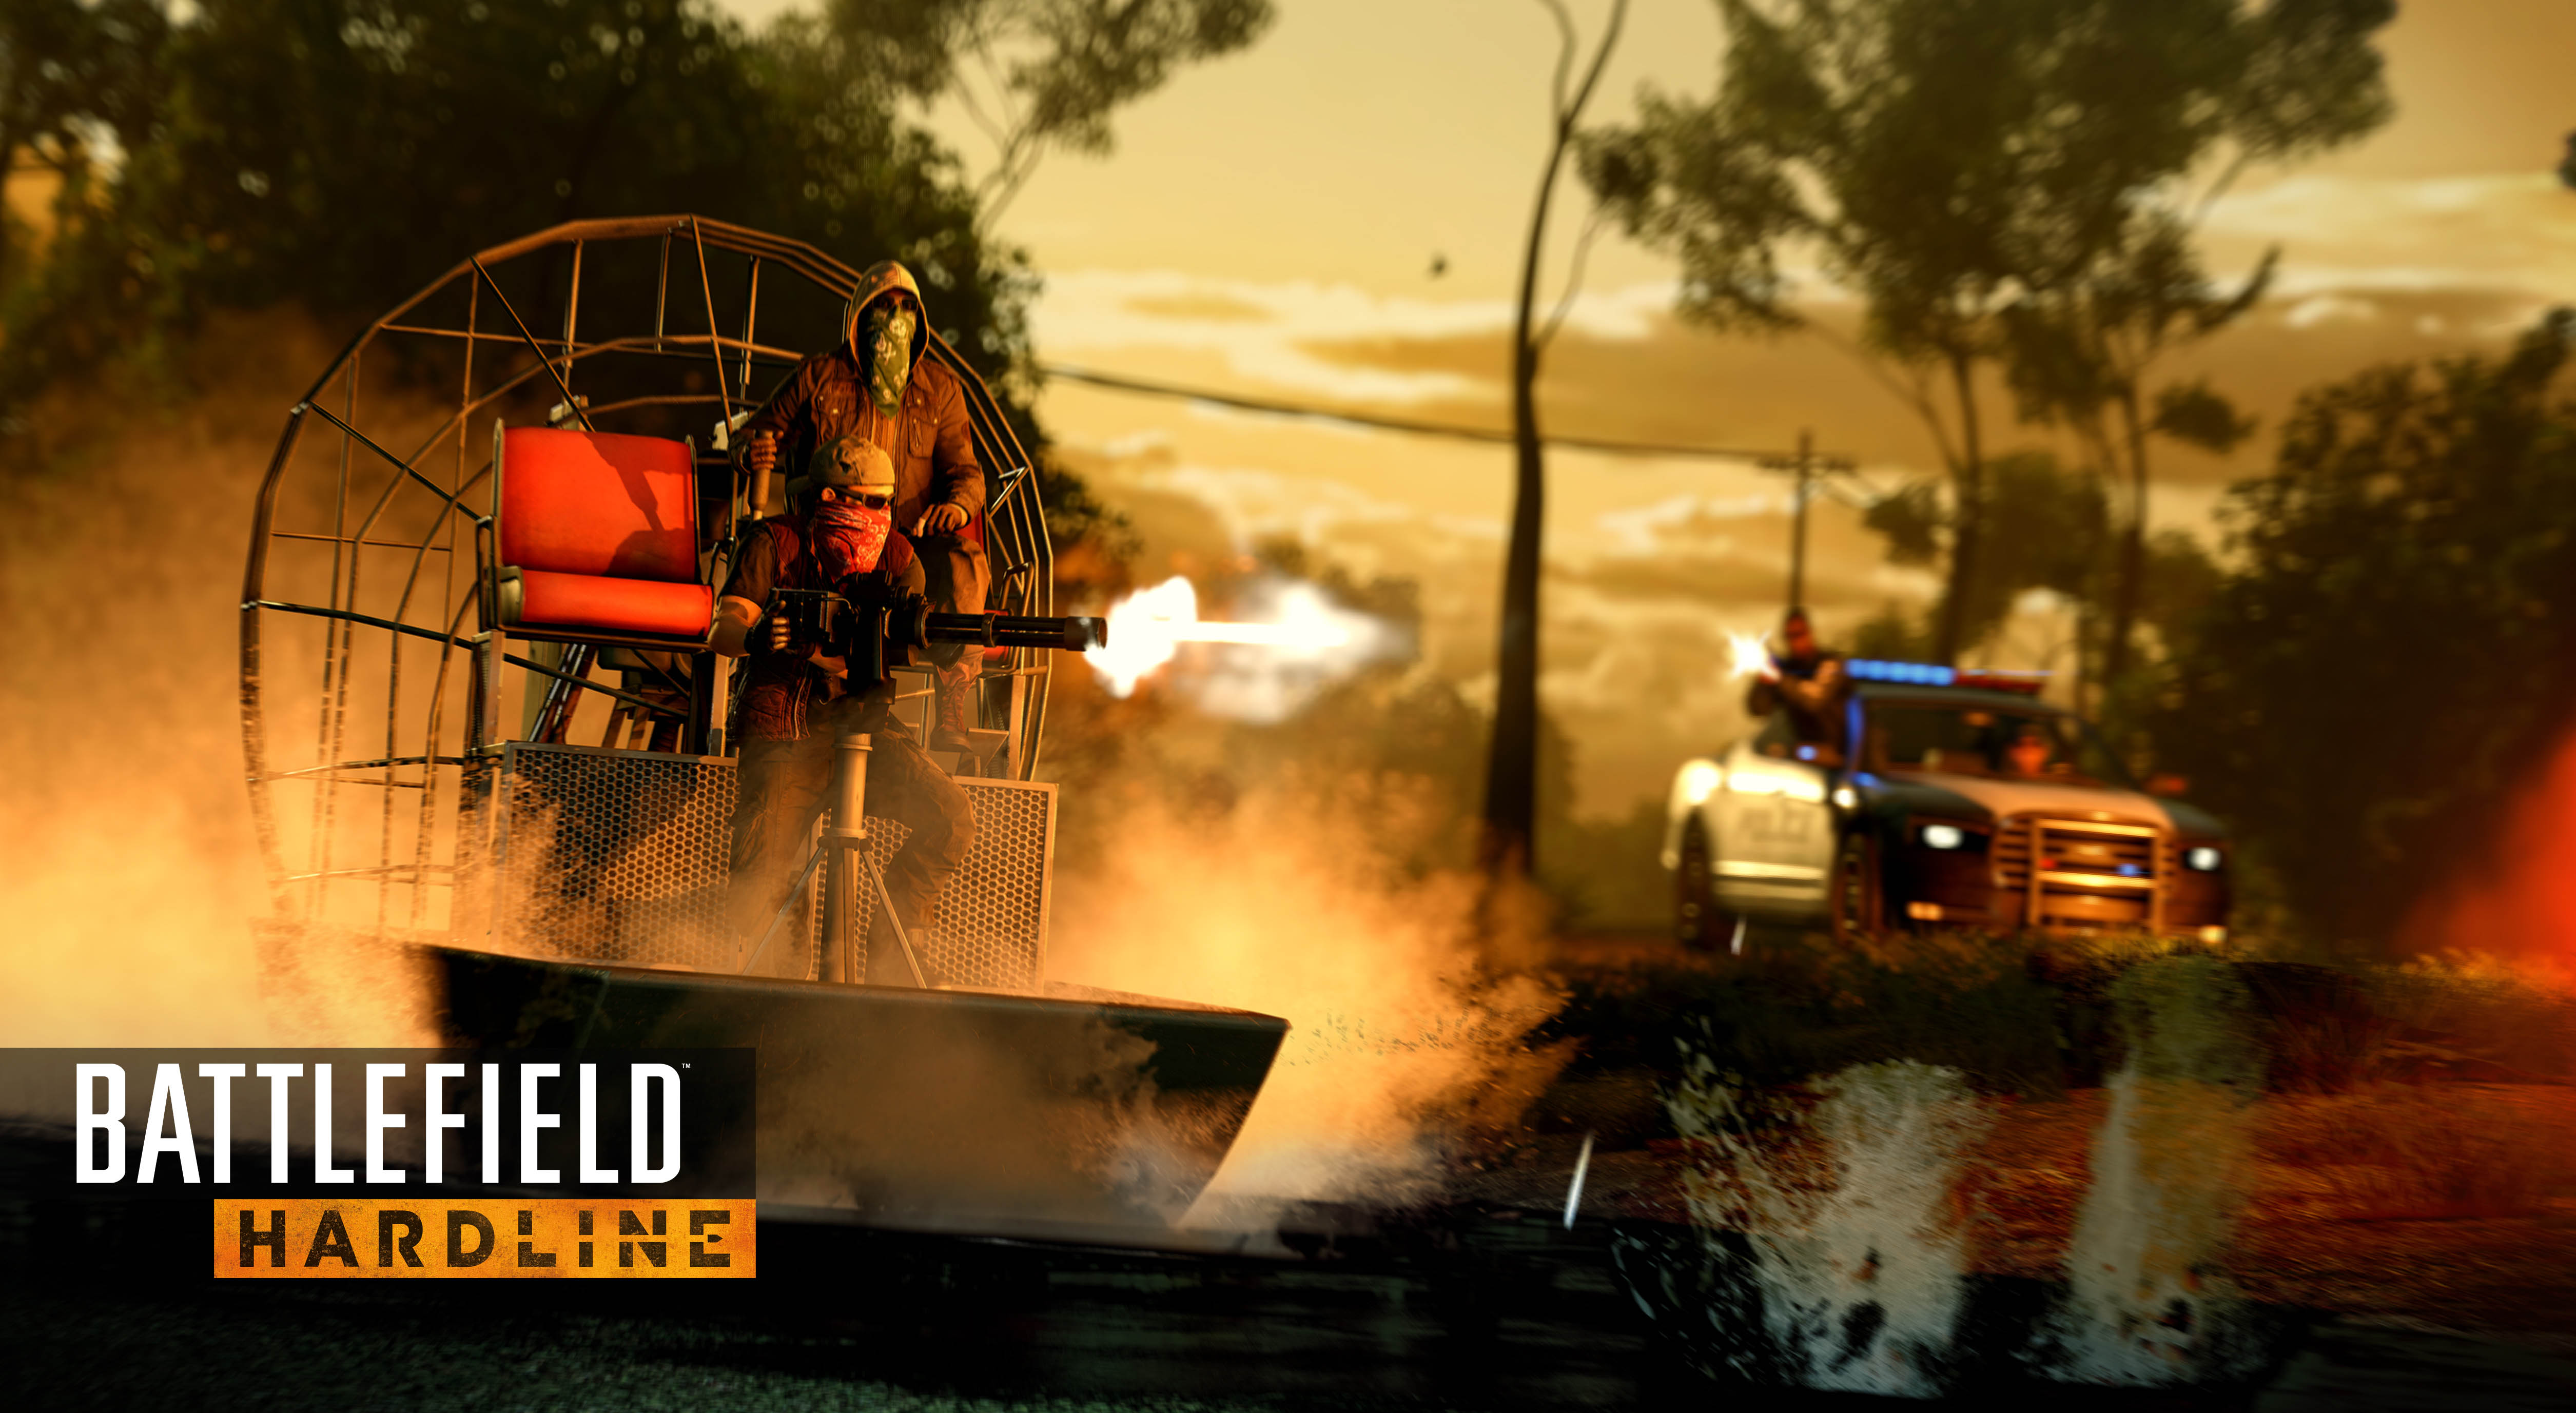 Battlefield Hardline 4k Ultra HD Wallpaper And Background Image